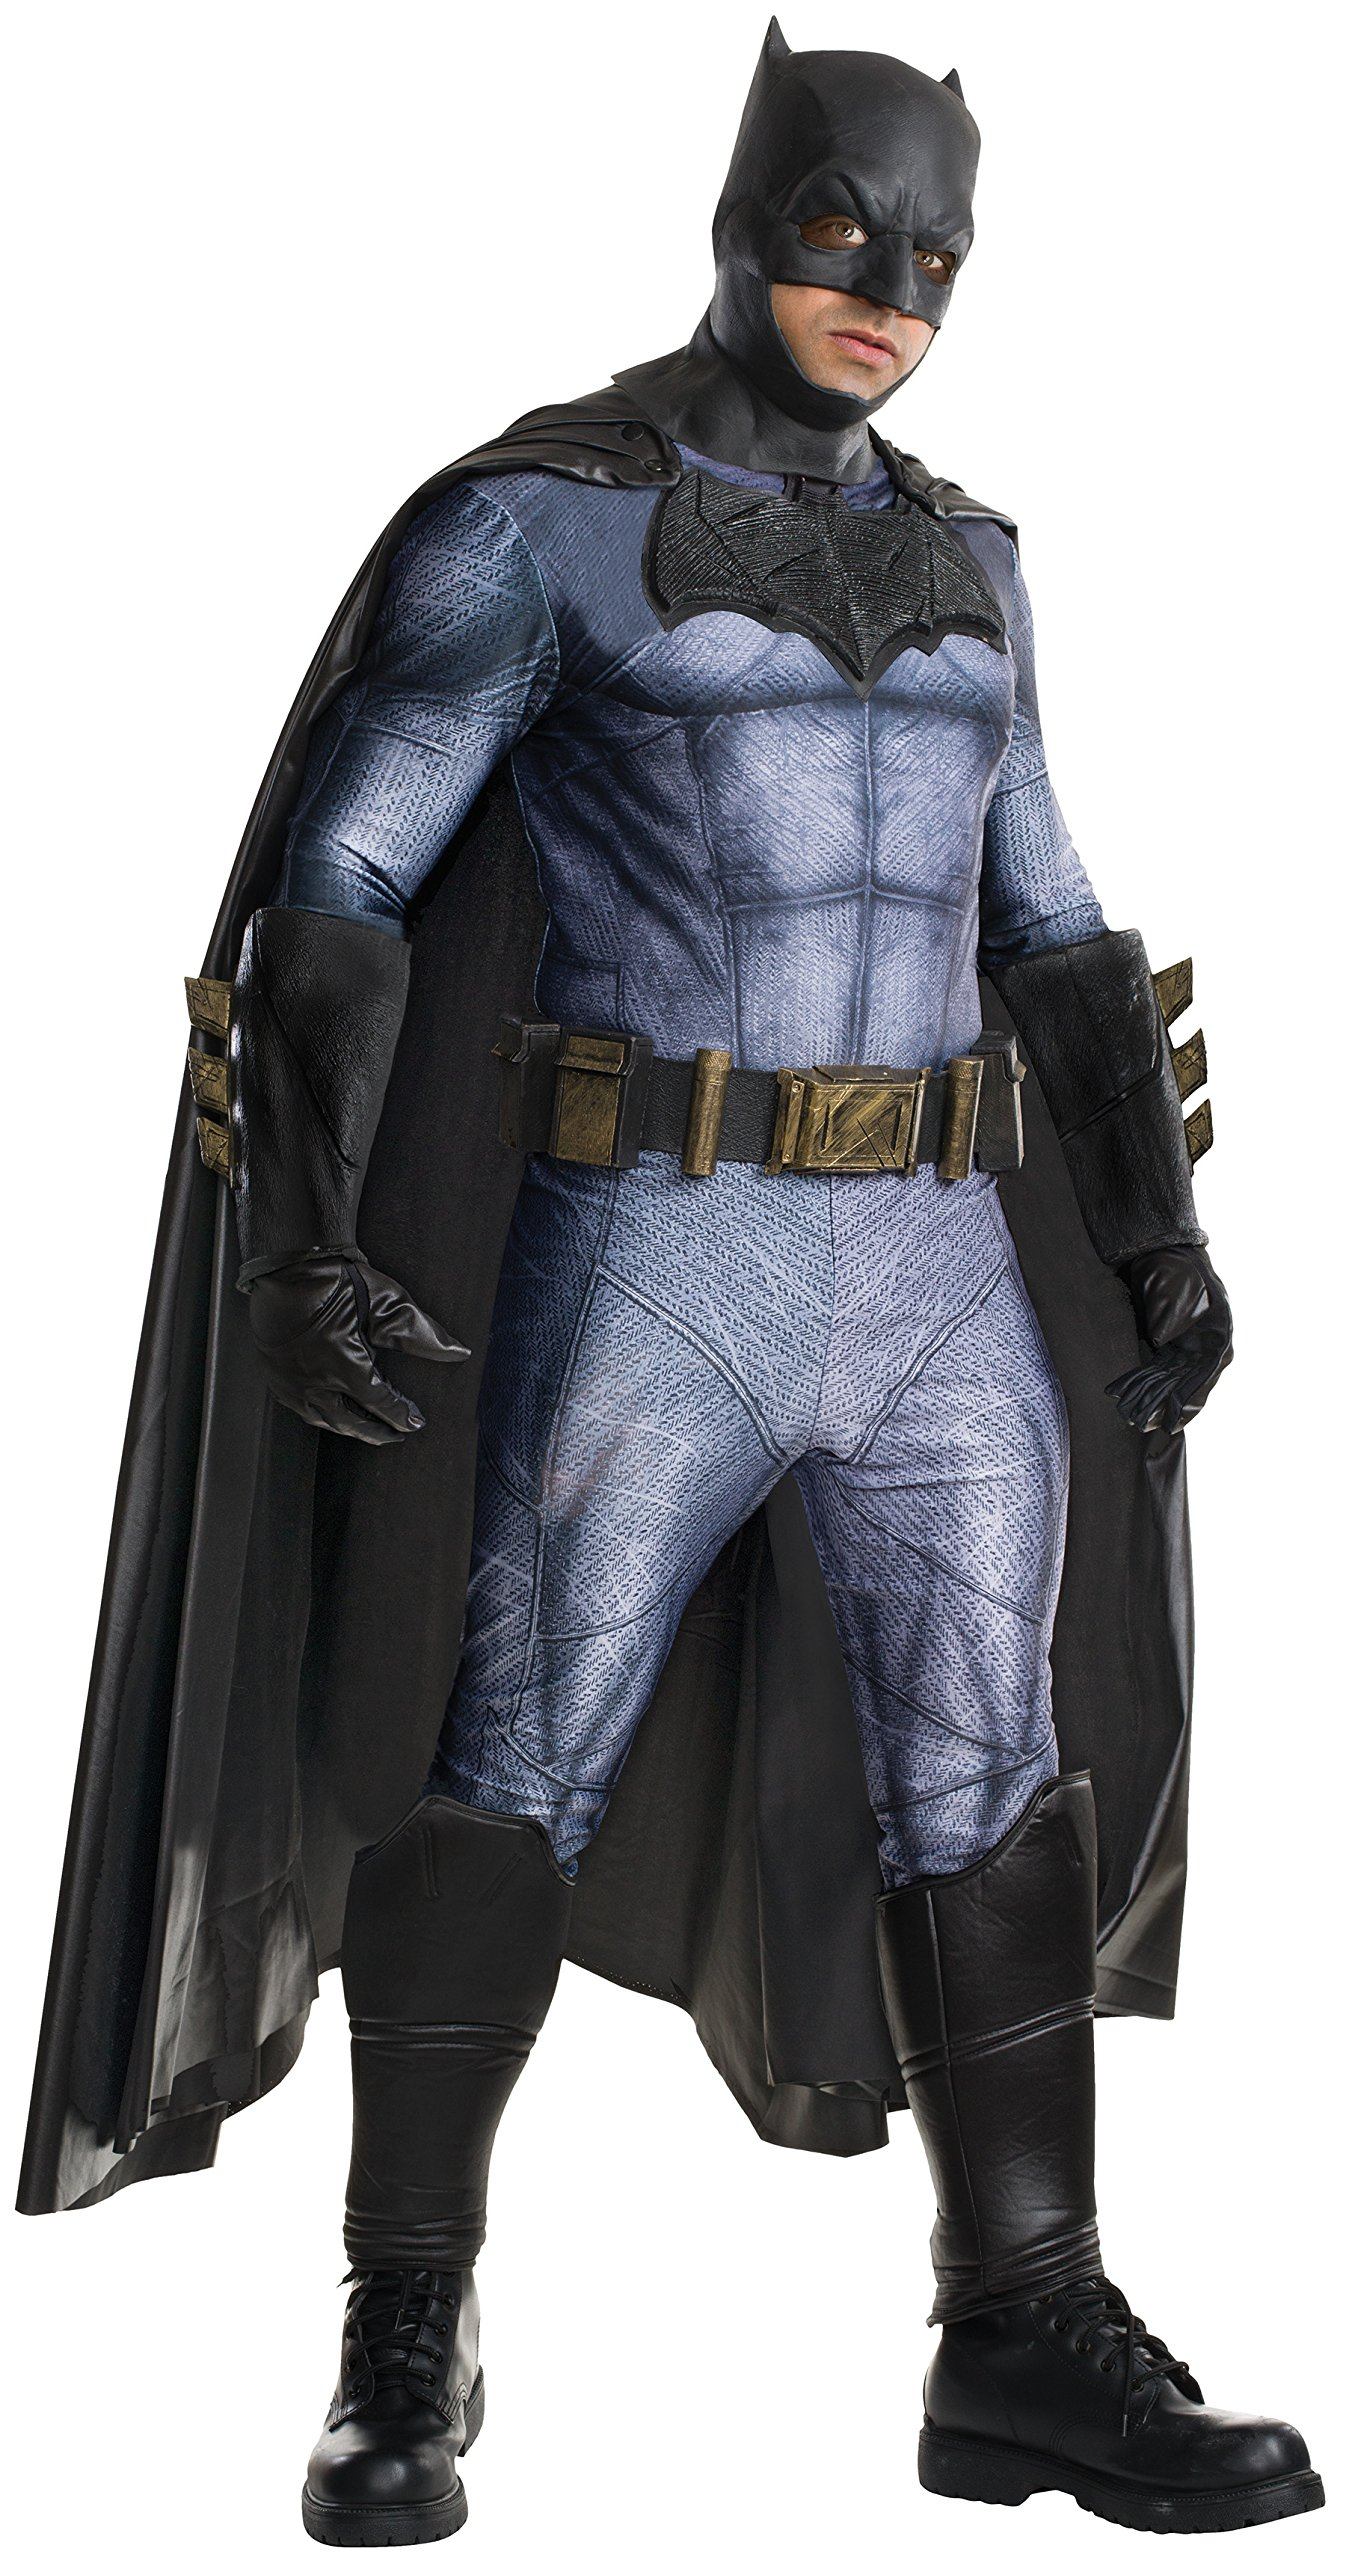 Rubie's Men's Batman v Superman: Dawn of Justice Grand Heritage Batman Costume, Multi, One Size by Rubie's